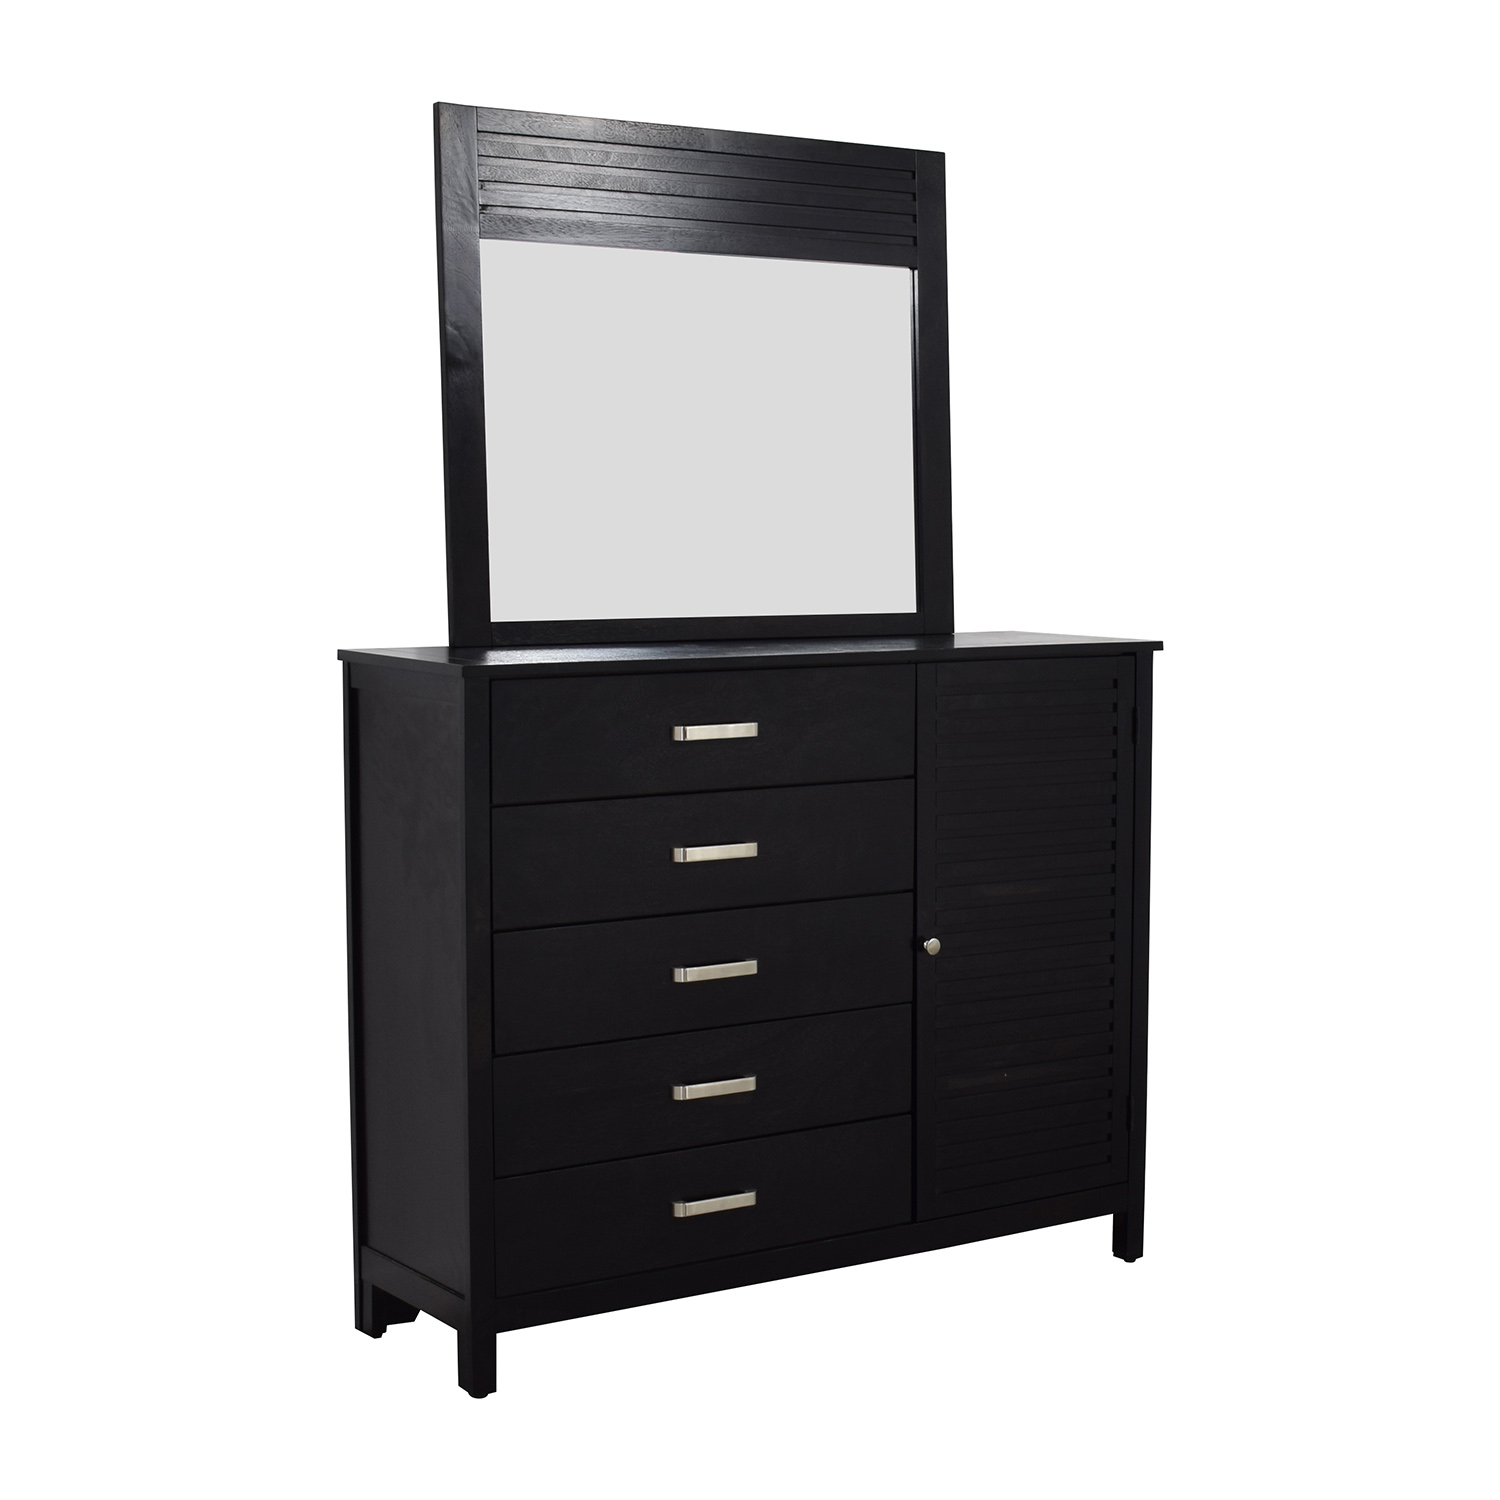 shop Bobs Furniture Dalton Espresso Dresser and Mirror Bobs Furniture